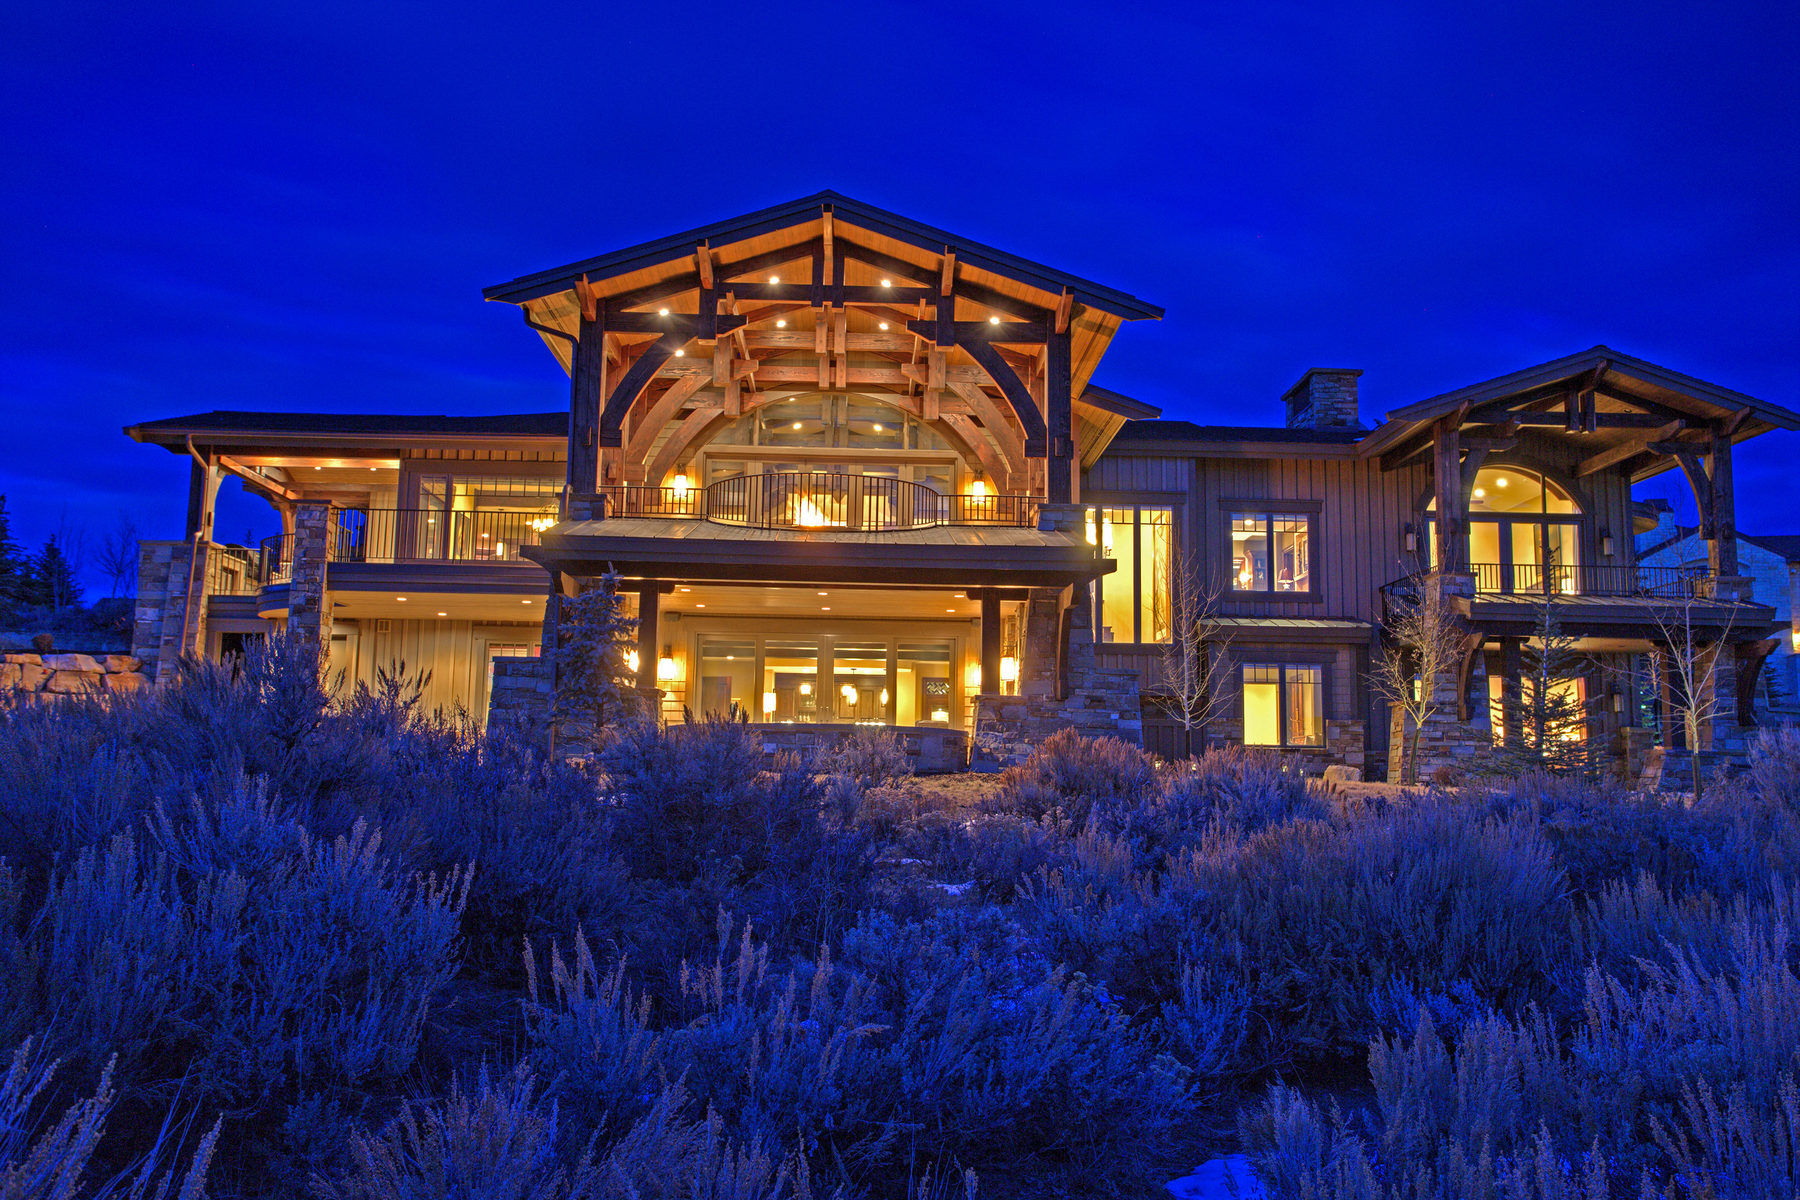 Single Family Home for Sale at Spectacular Home in Promontory. Featured in the 2013 Parade of Homes! 2817 Blue Sage Trl Park City, Utah, 84098 United States